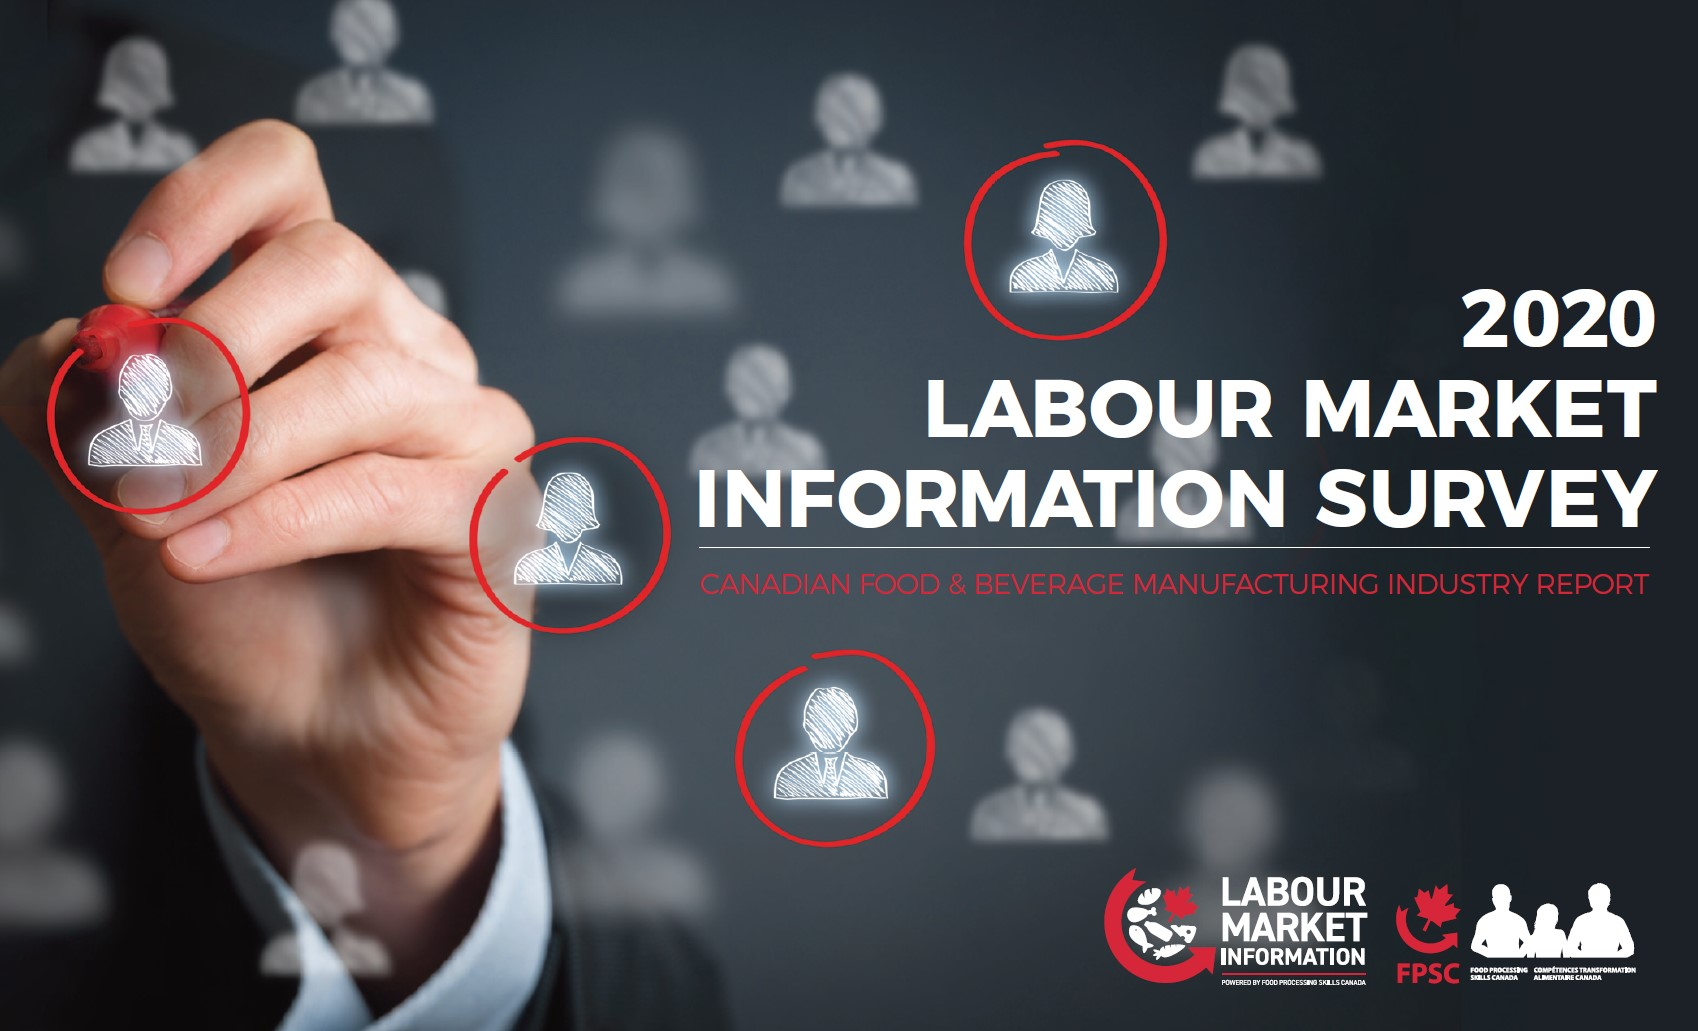 2020 Labour Market Information Survey Report – Canadian Food & Beverage Manufacturing Industry Report